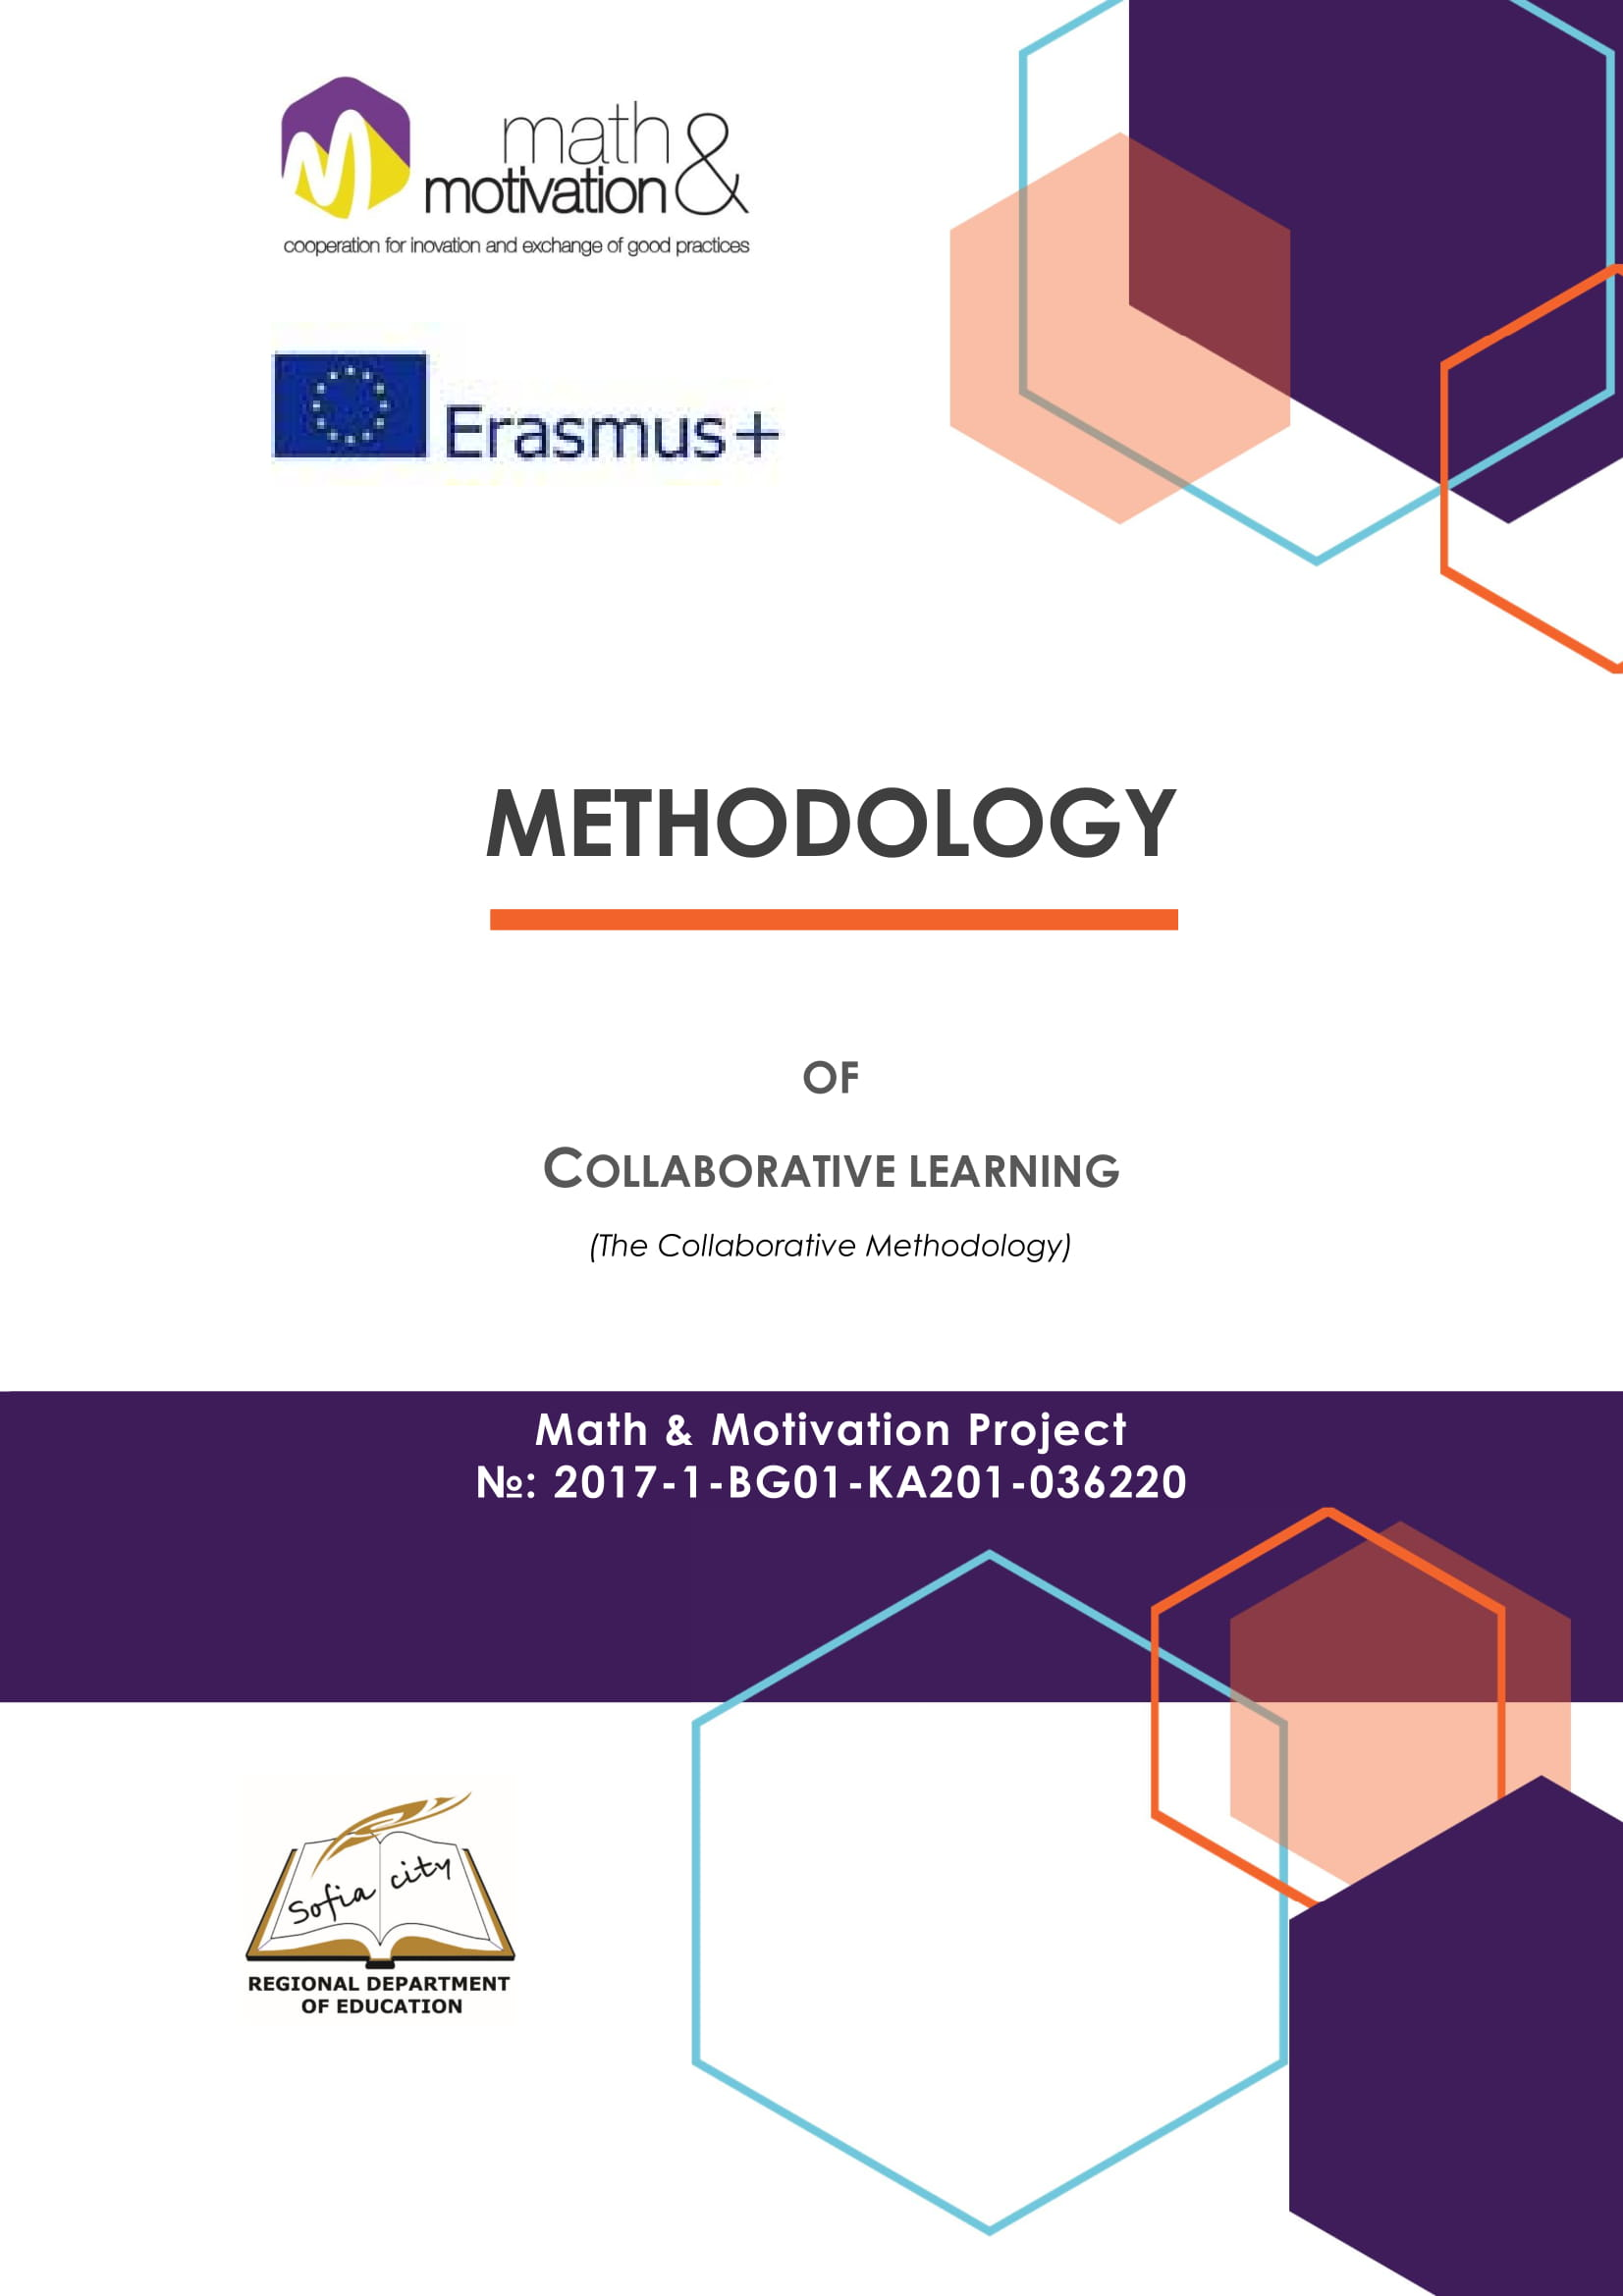 What is Collaborative learning methodology?